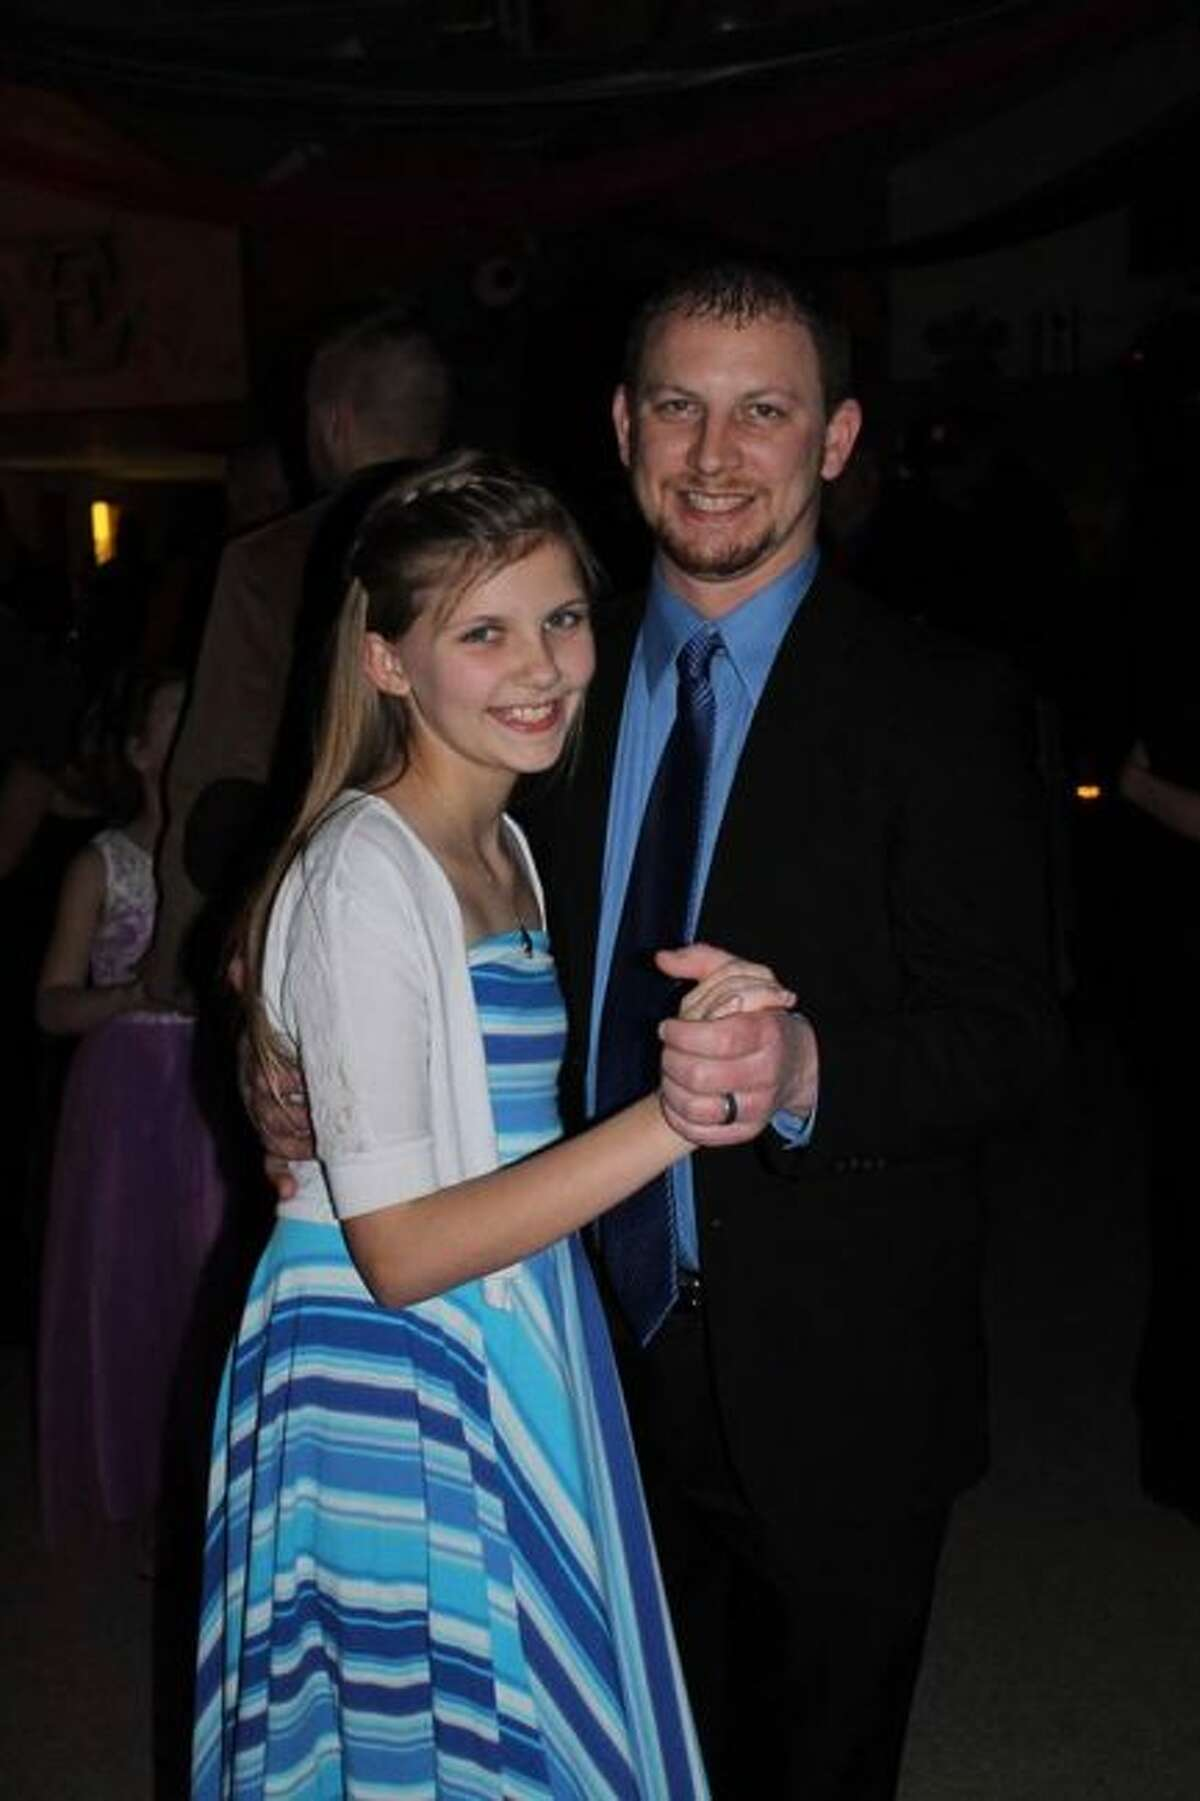 Pictured are fifth-grader Kayla Ford, and her father, Nathan Ford, at the Morley Stanwood Community Schools' daddy daughter dance, held last month. A number of other area school districts are holding dances in February. (Courtesy photo)